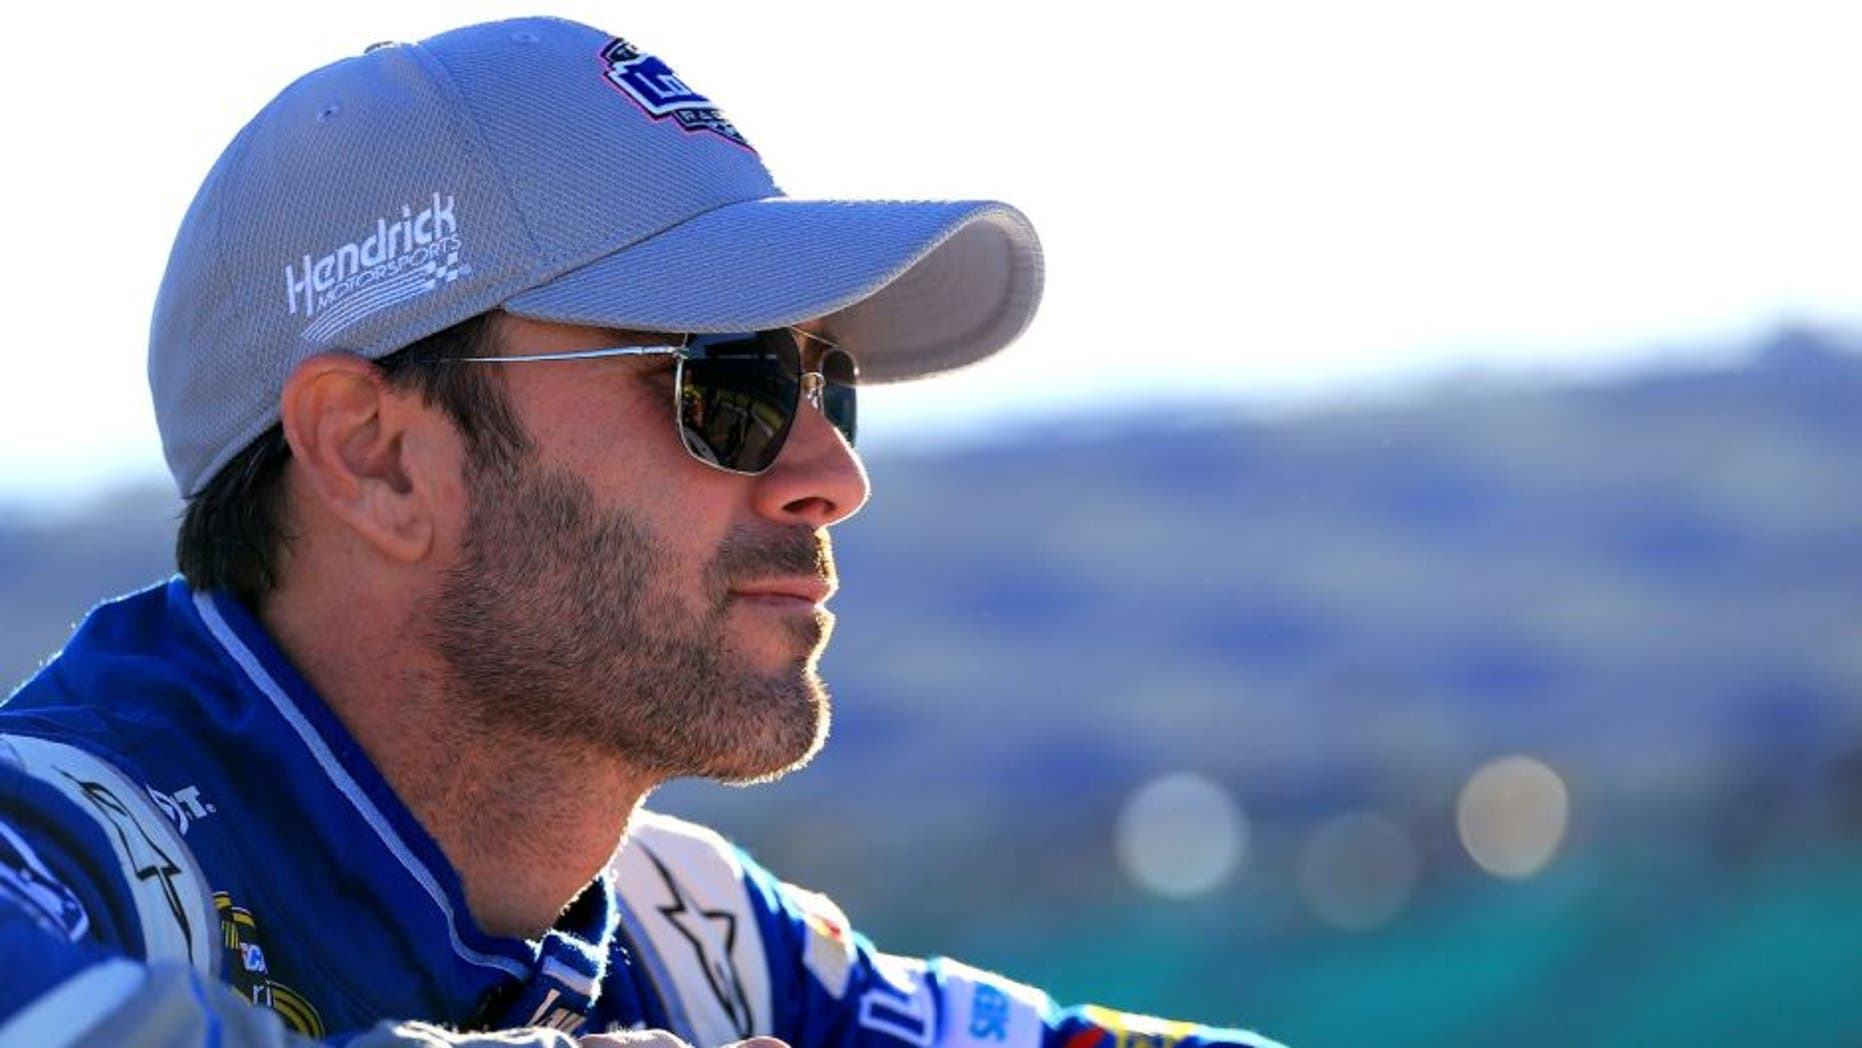 KANSAS CITY, KS - OCTOBER 16: Jimmie Johnson, driver of the #48 Lowe's Chevrolet, looks on during qualifying for the NASCAR Sprint Cup Series Hollywood Casino 400 at Kansas Speedway on October 16, 2015 in Kansas City, Kansas. (Photo by Daniel Shirey/Getty Images)